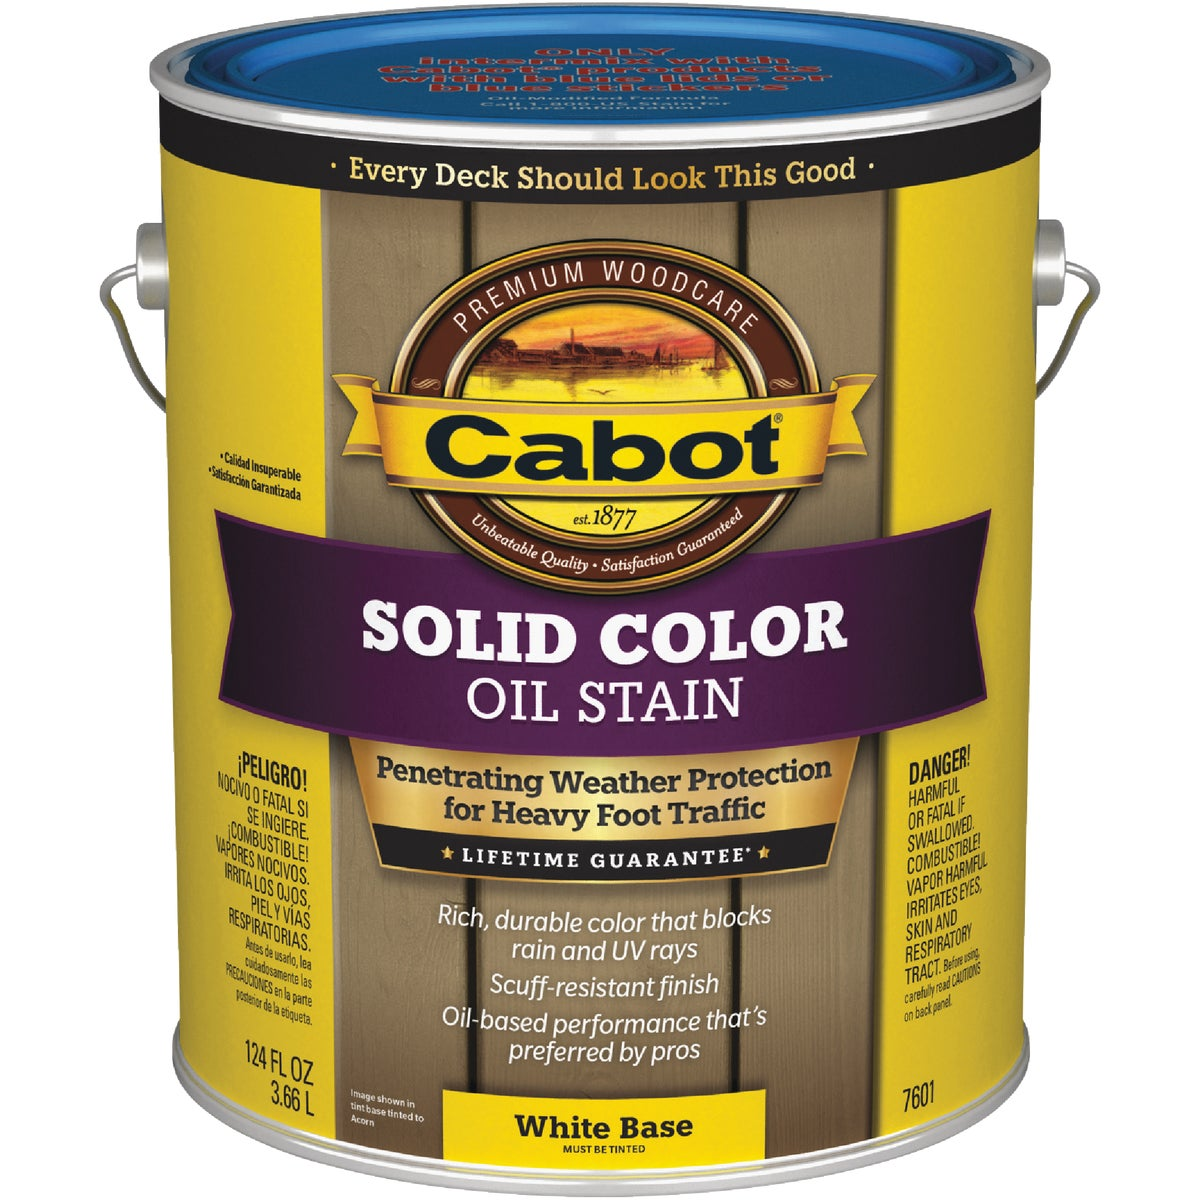 WHT BS SOLID DECK STAIN - 140.0007601.007 by Valspar Corp